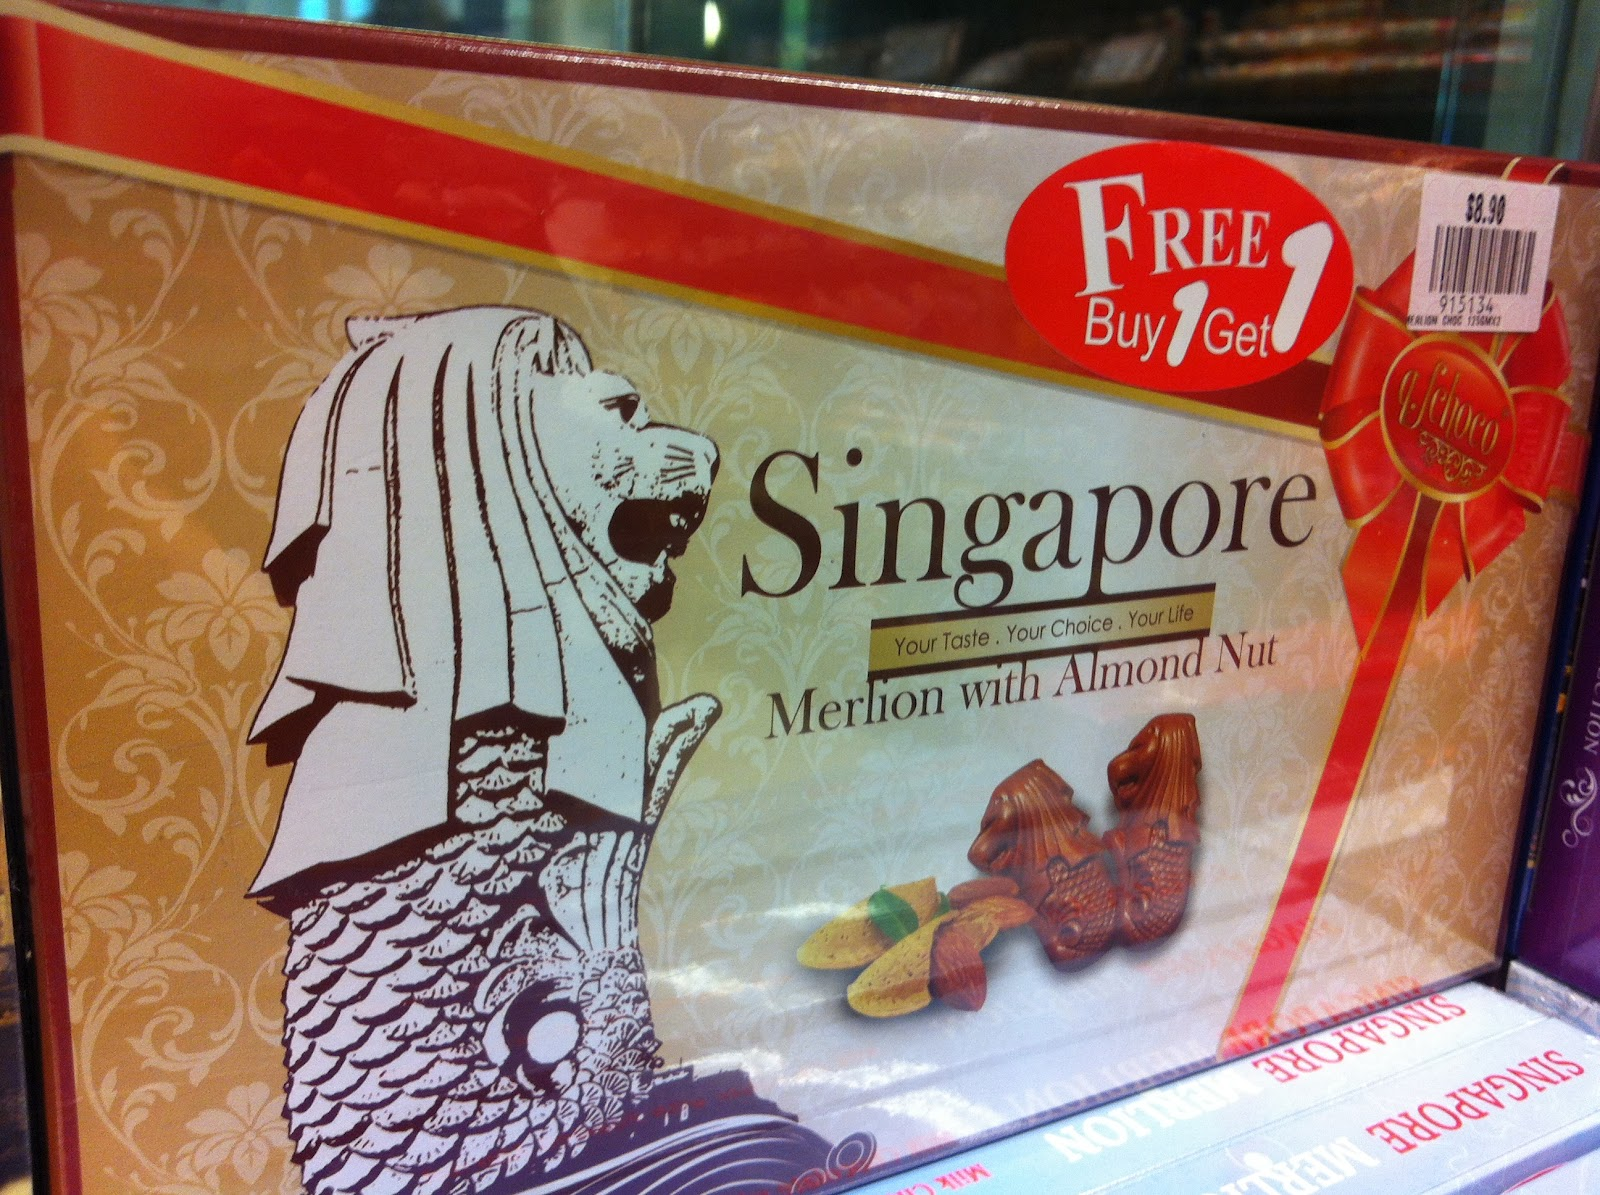 Things To Do In Singapore And Gift Ideas Mastering Credits Kaos Souvenir My Favourite Item The Food Department That Would Make A Great Or For Overseas Friends Is Tea Pack India Known Their Good